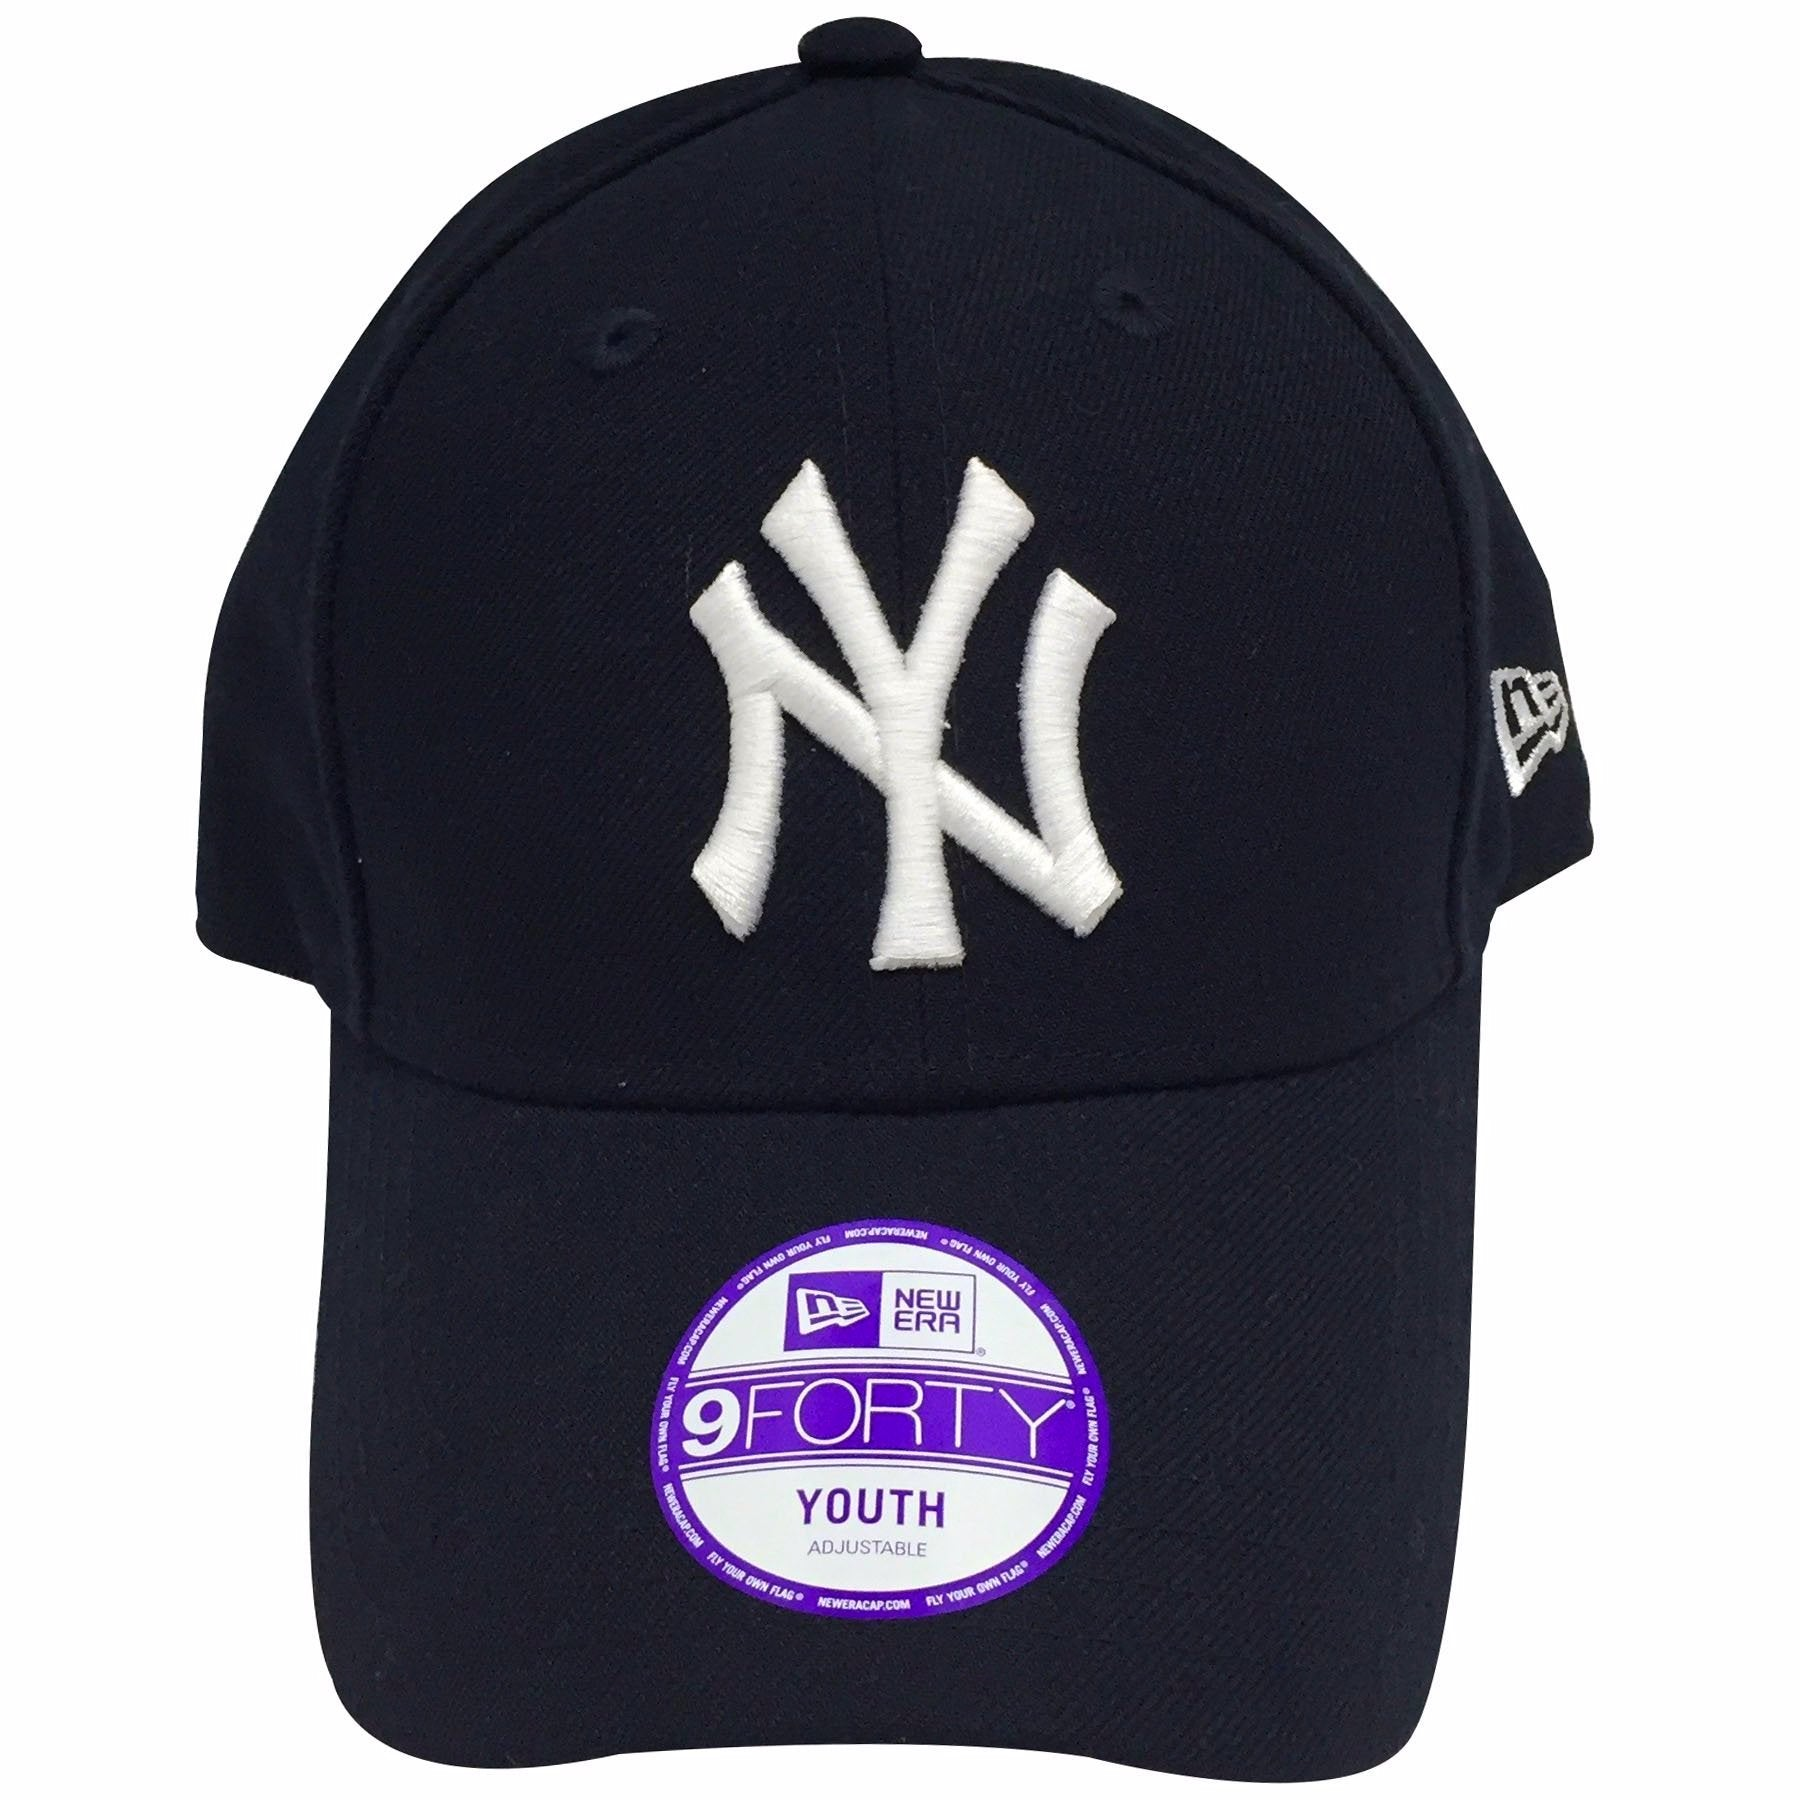 0a019bfd896 the New York Yankees navy blue dad hat has a white New York Yankees logo  embroidered